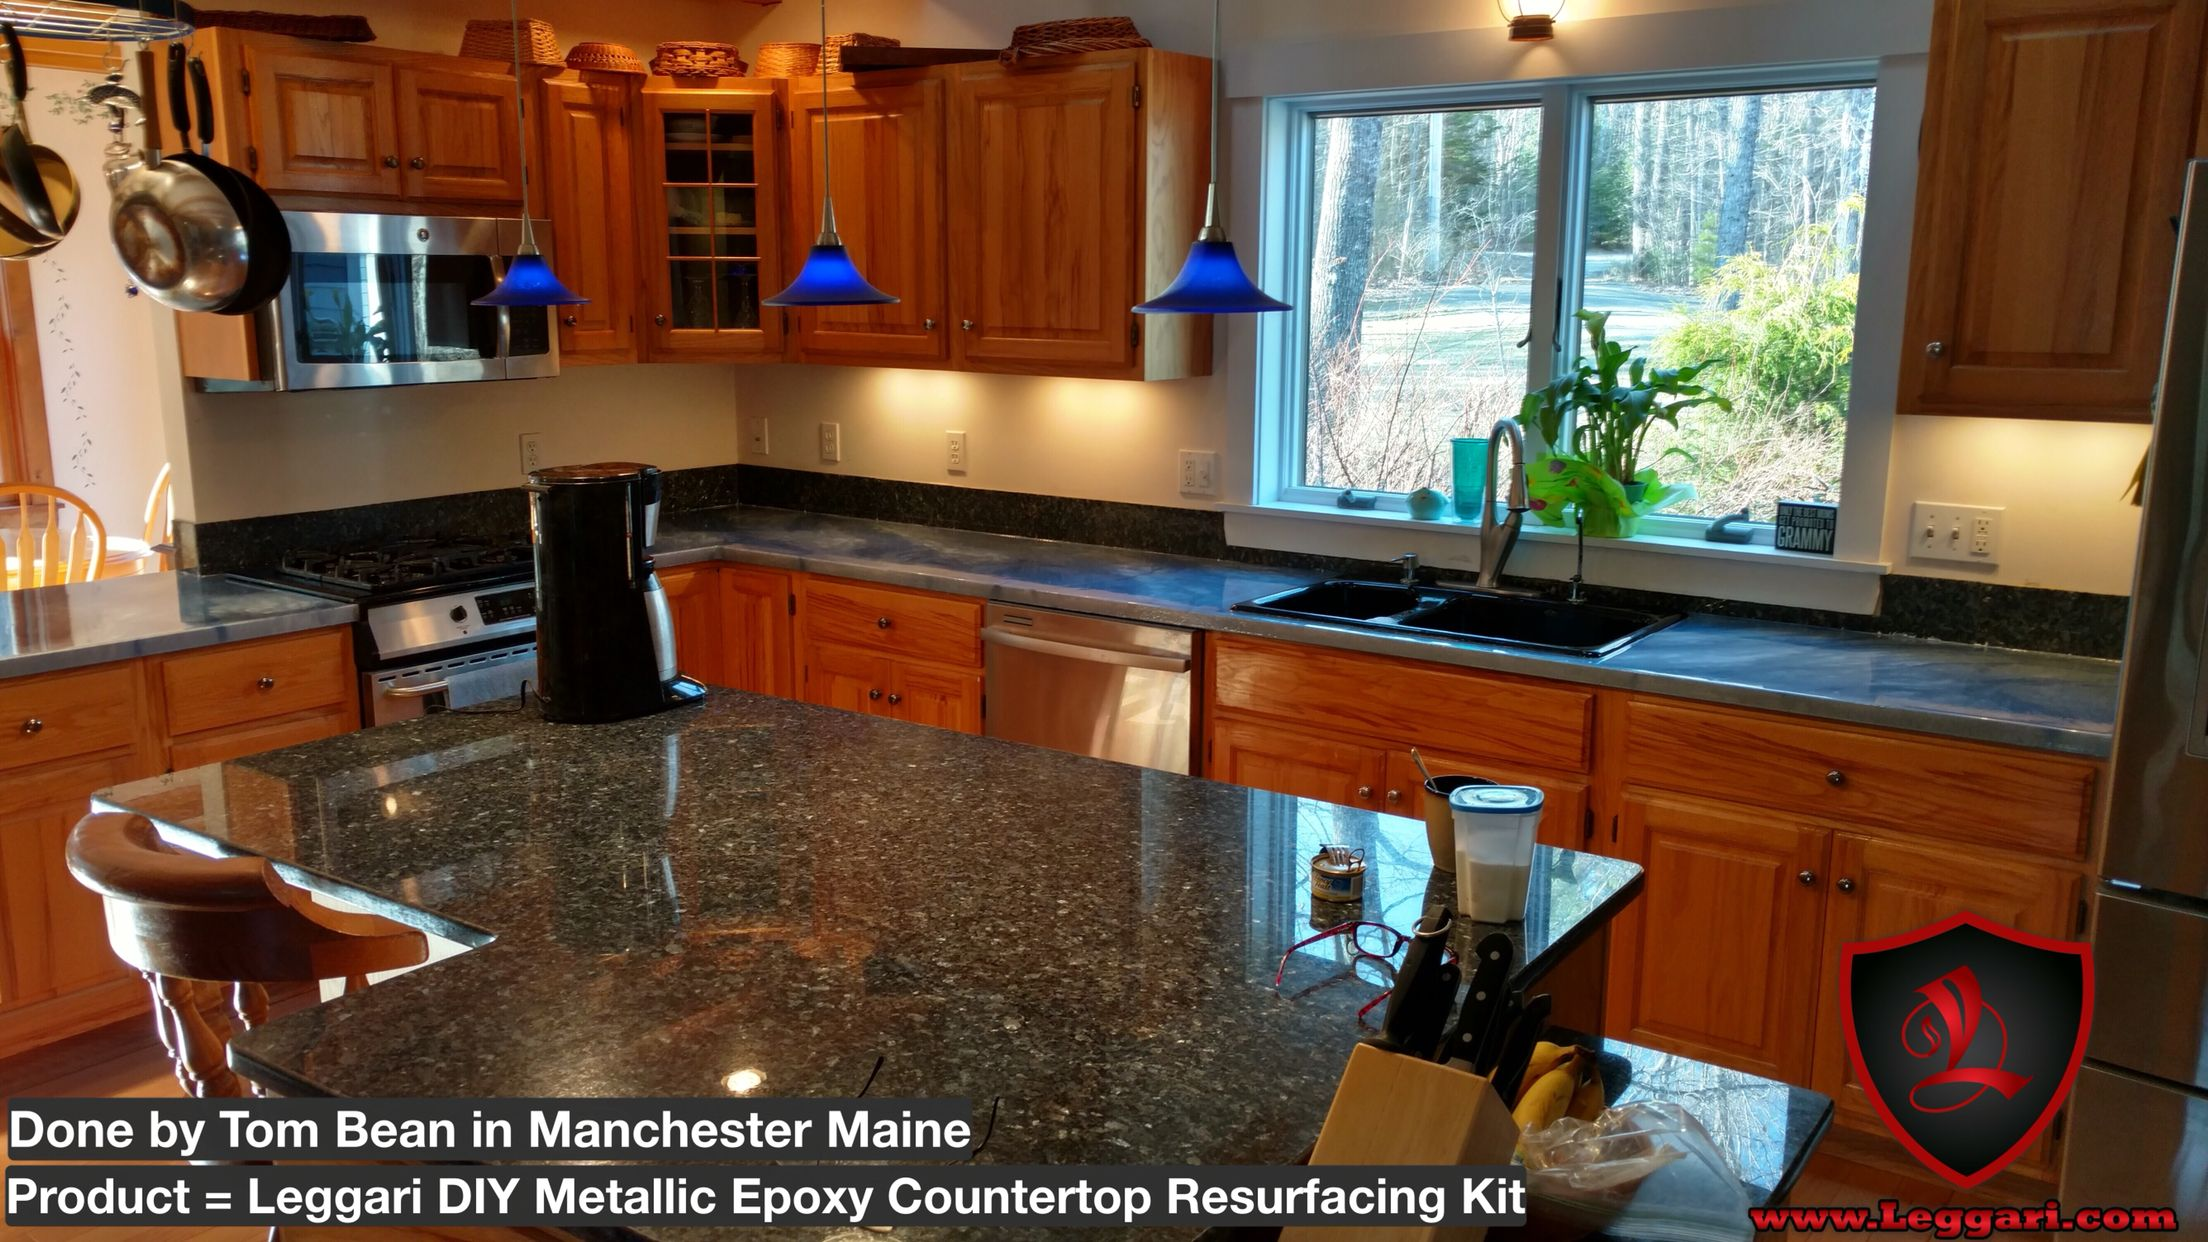 Our Metallic Epoxy Countertop Kits Have Been A Huge Success